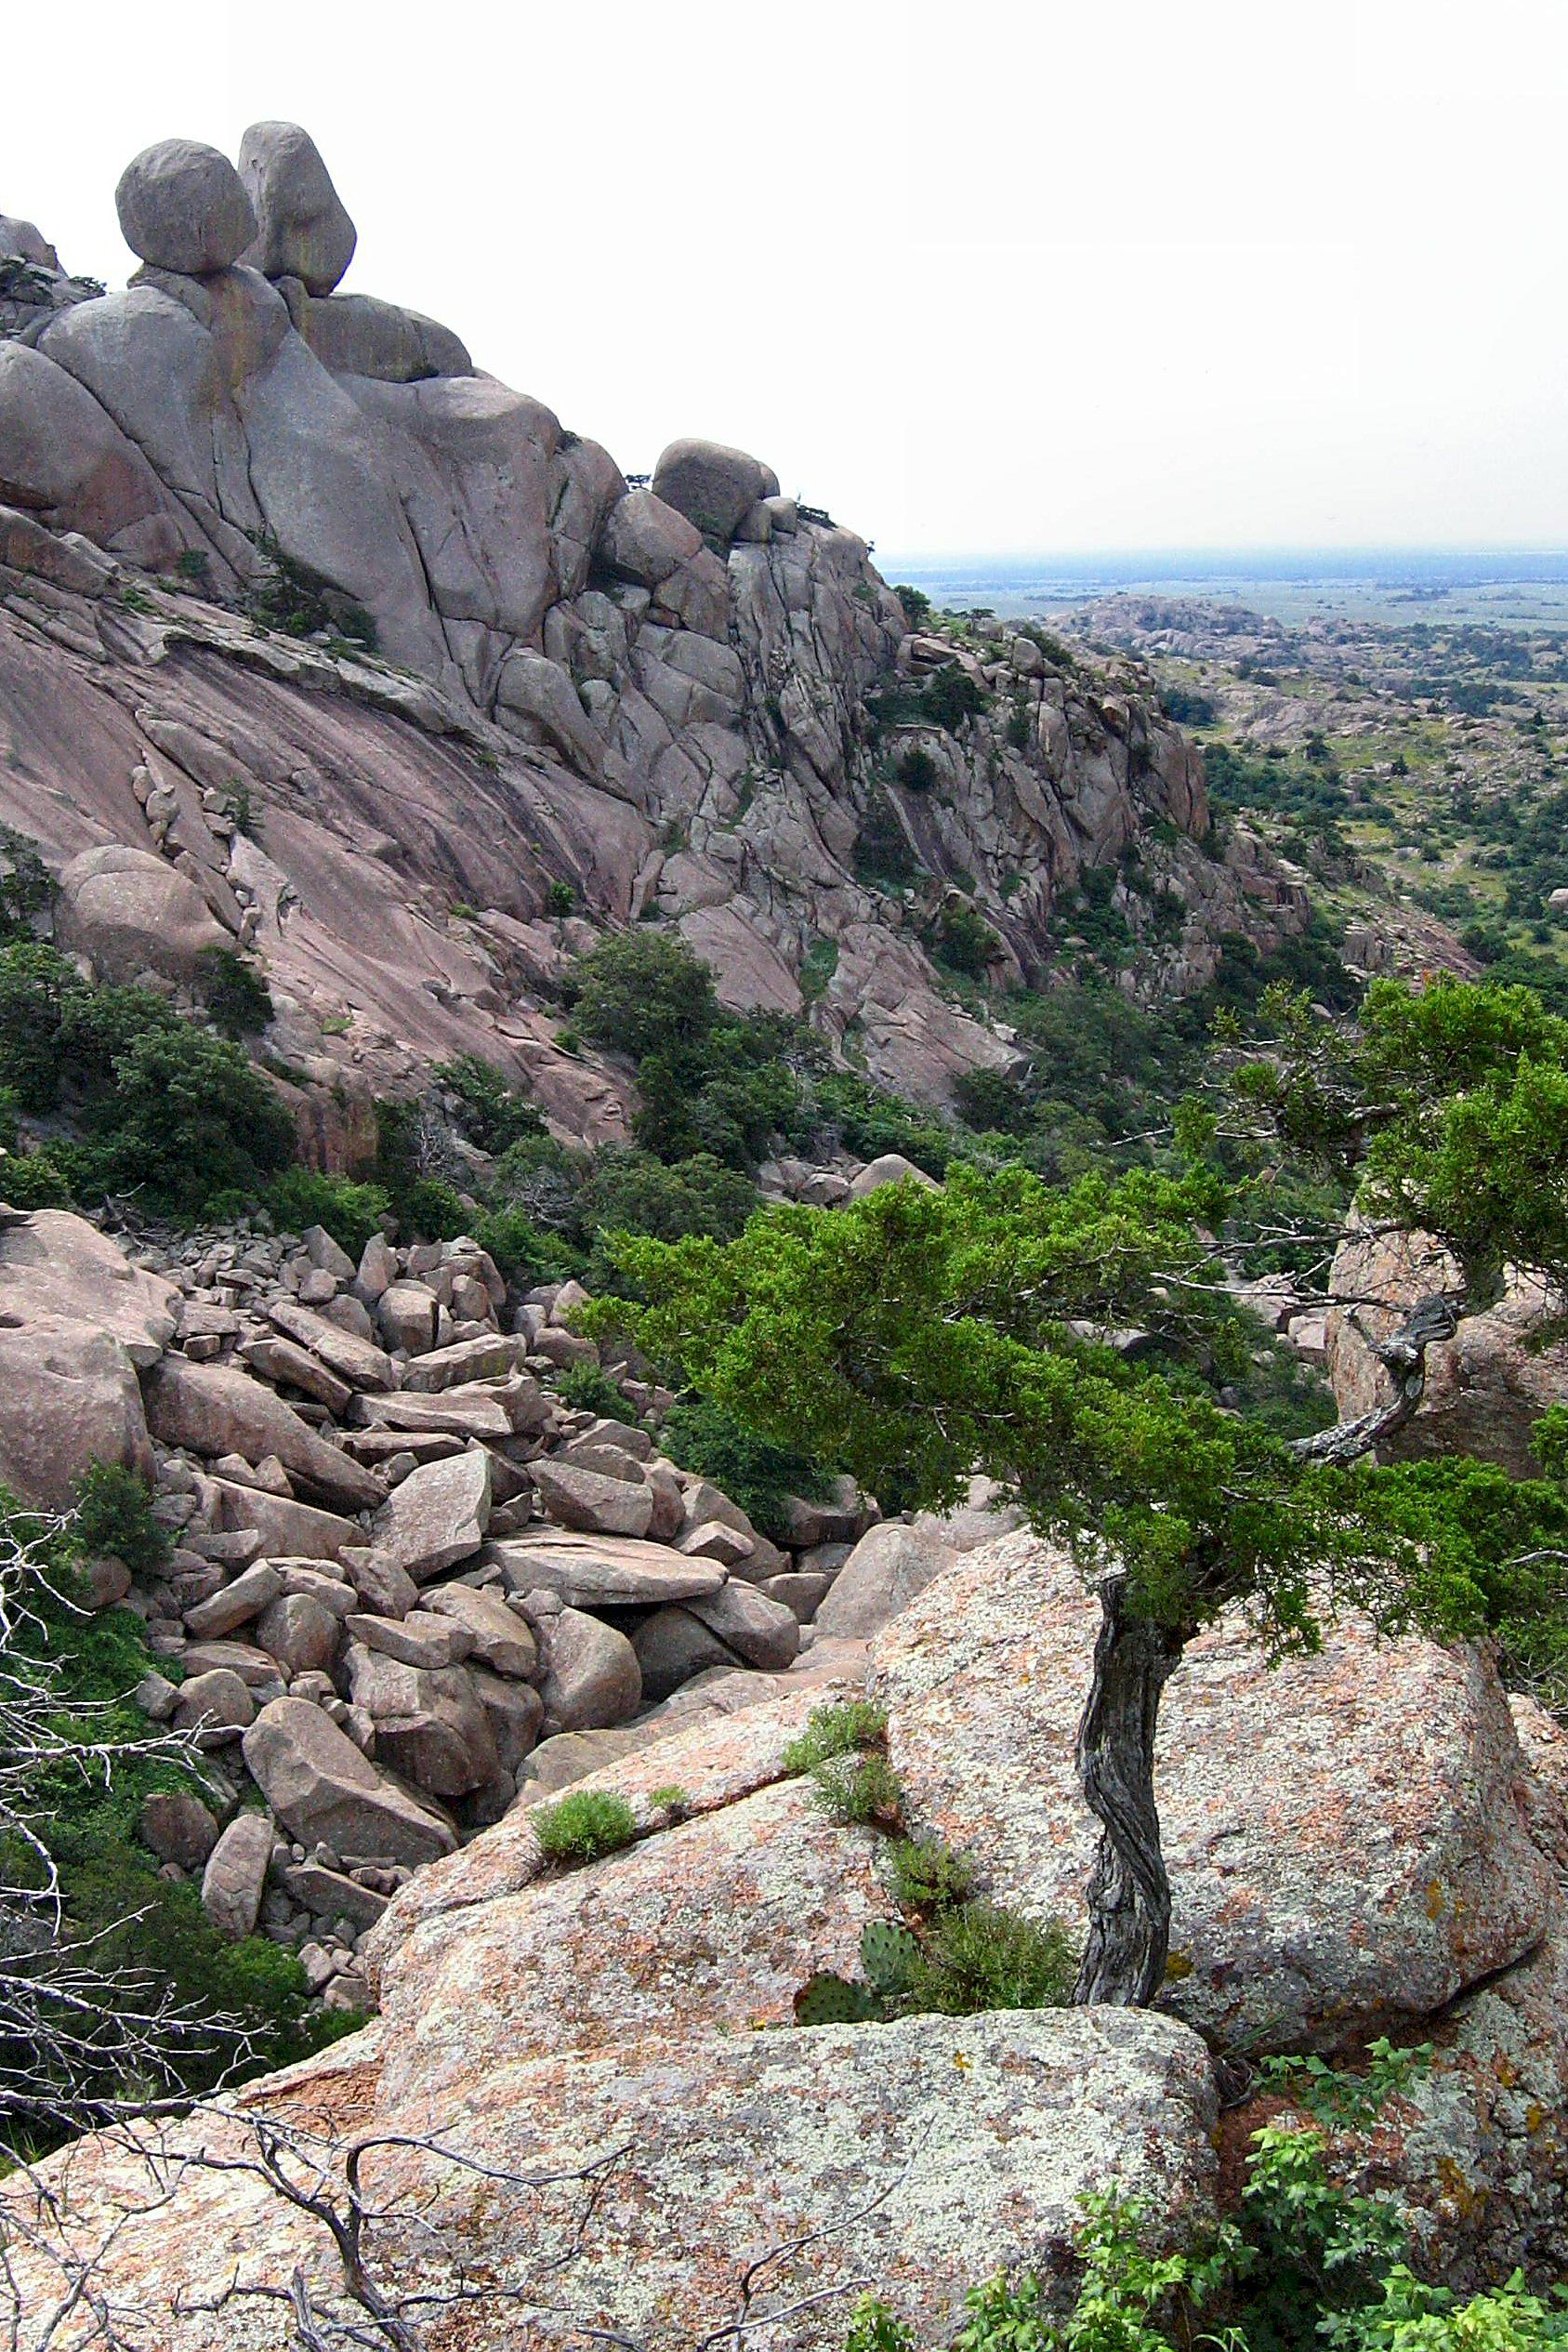 Charons garden wilderness the apple pear above valley of the charons garden wilderness the apple pear above valley of the boulders wichita mountains wildlife refuge oklahoma publicscrutiny